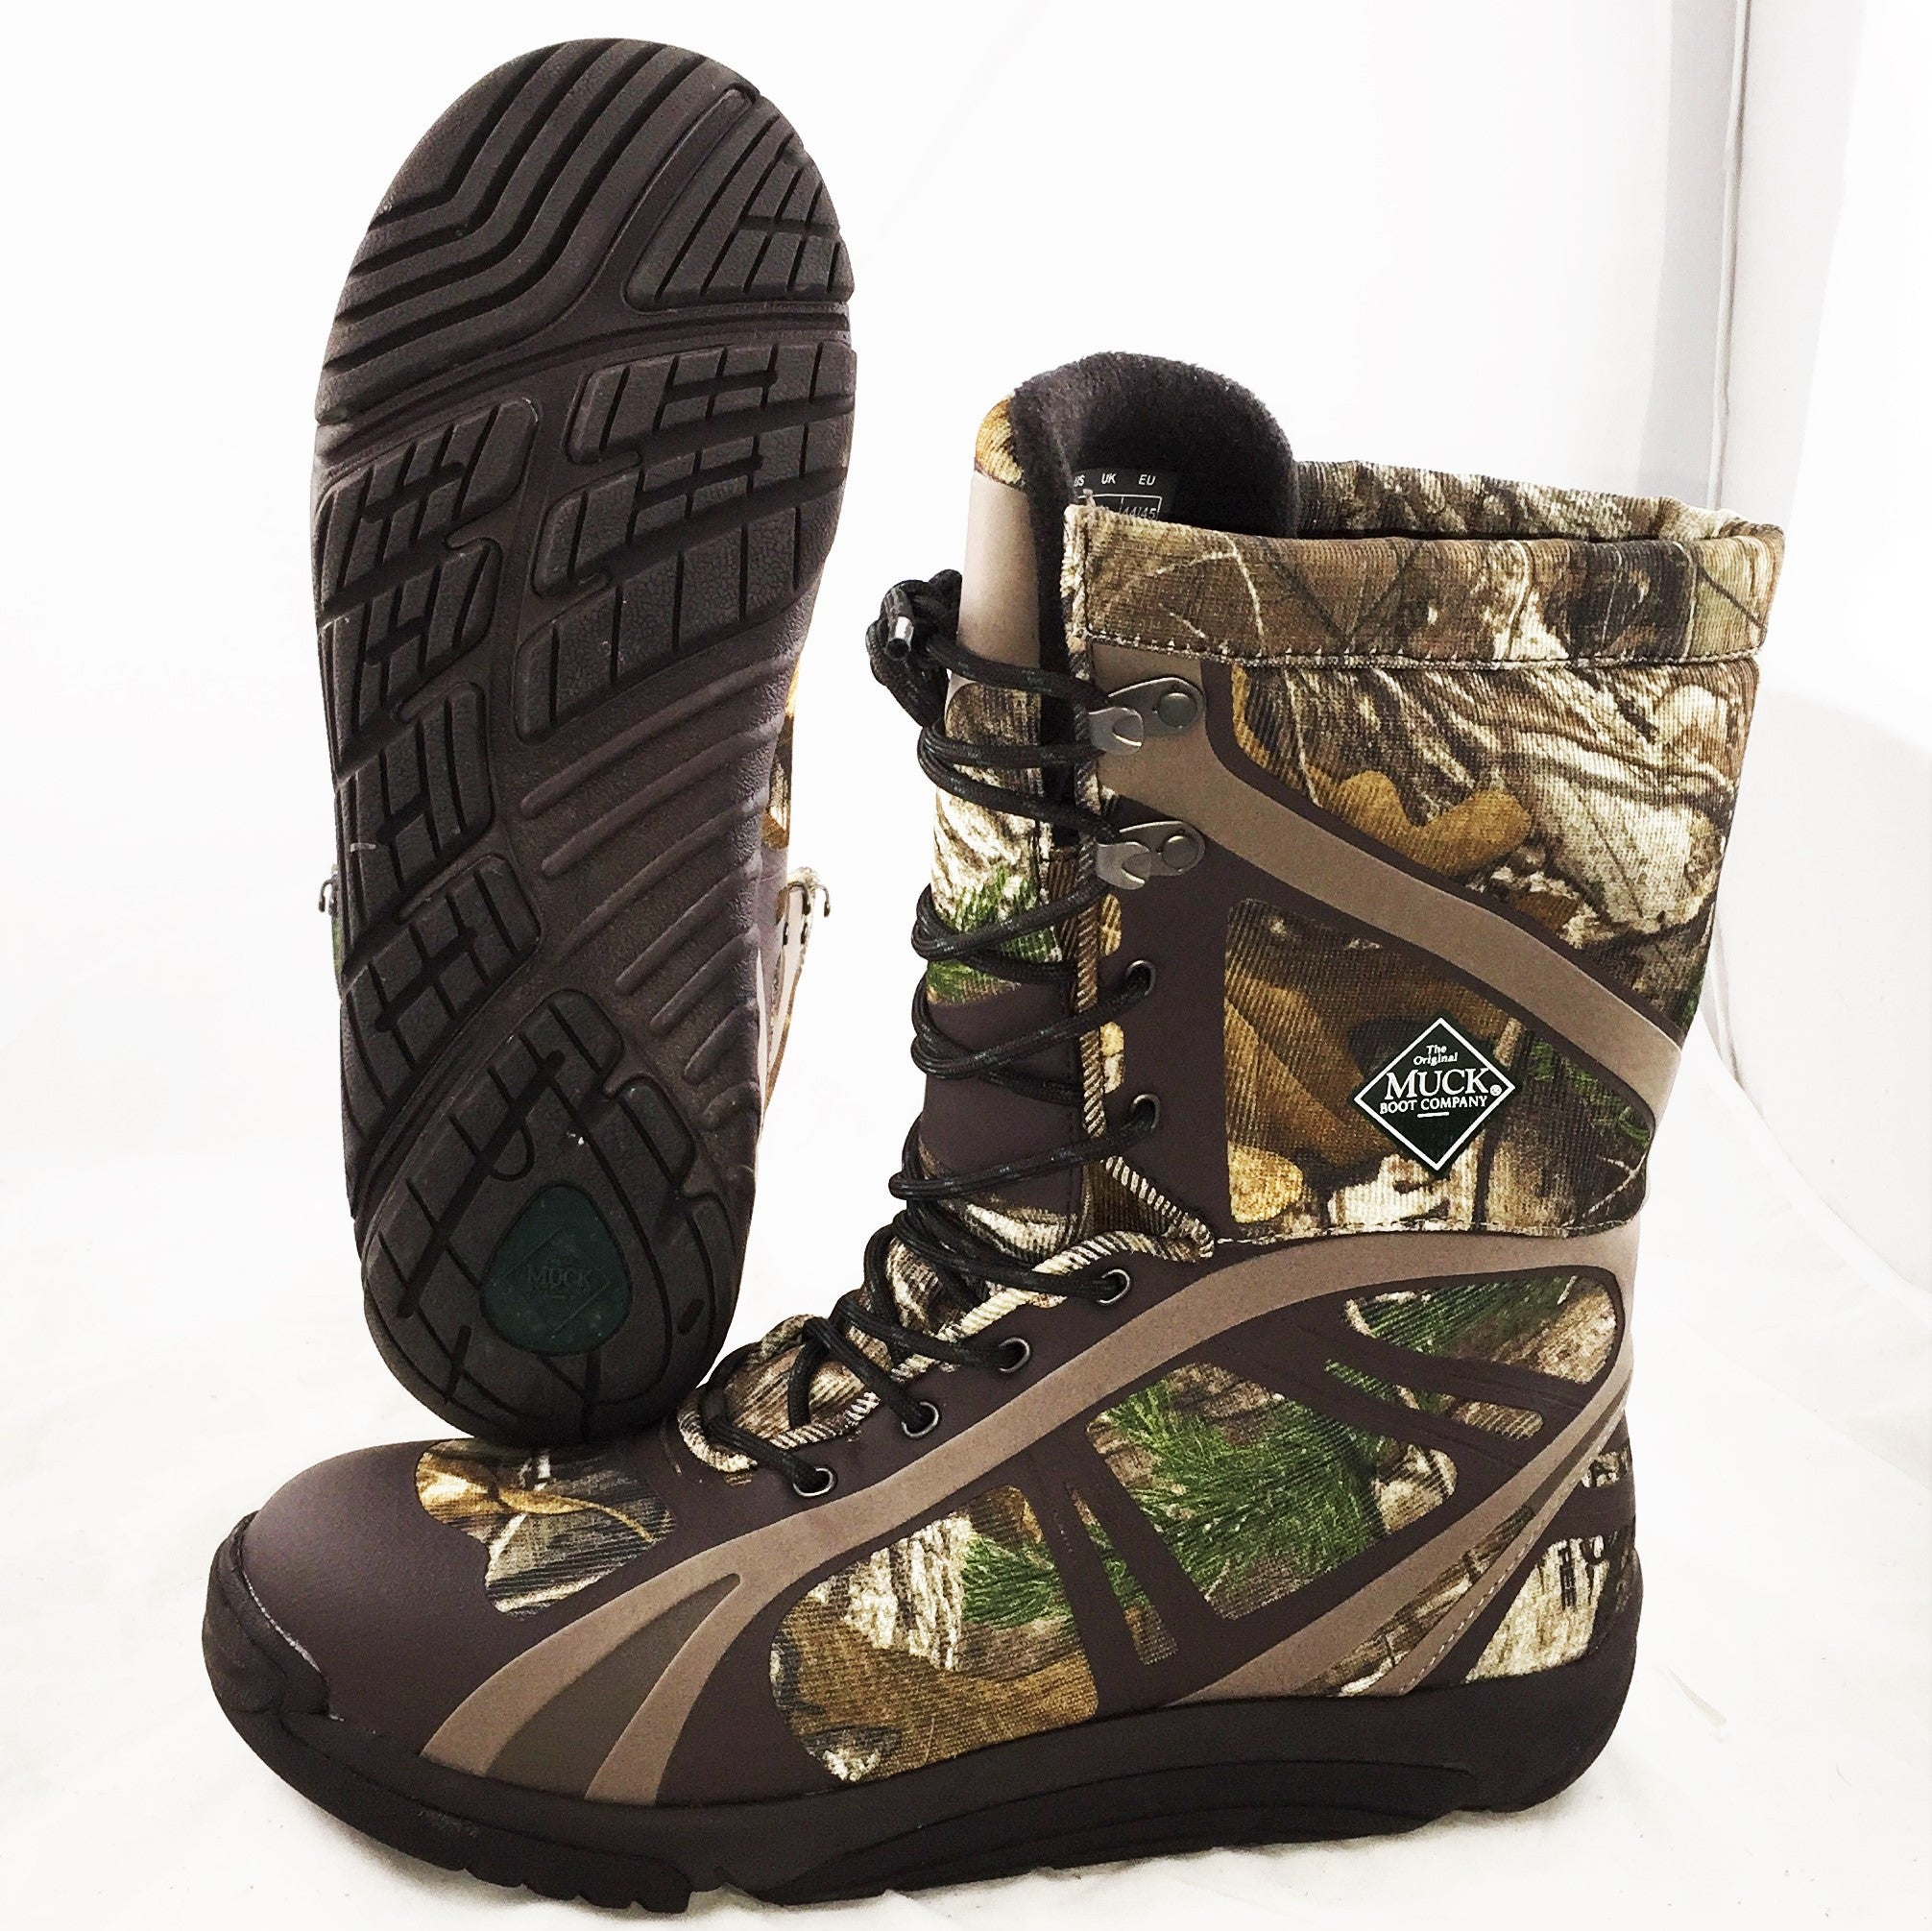 Pursuit Shadow Mid Muck Boots - Canadian Great Outdoors